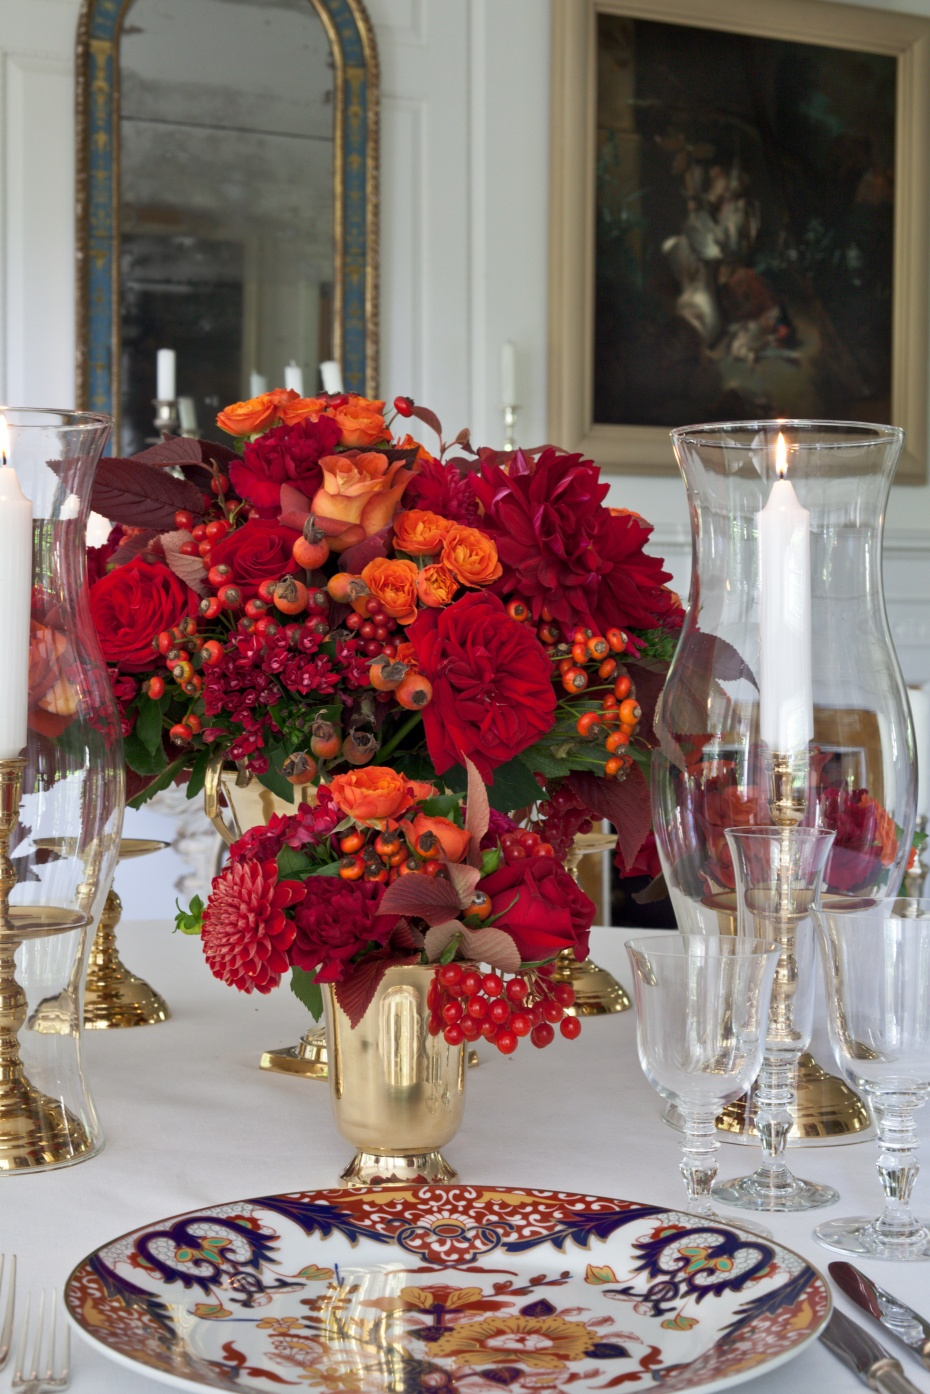 Carolyne Roehm has a wonderful gift for arranging florals, creating grand tablescapes that are quite breathtaking